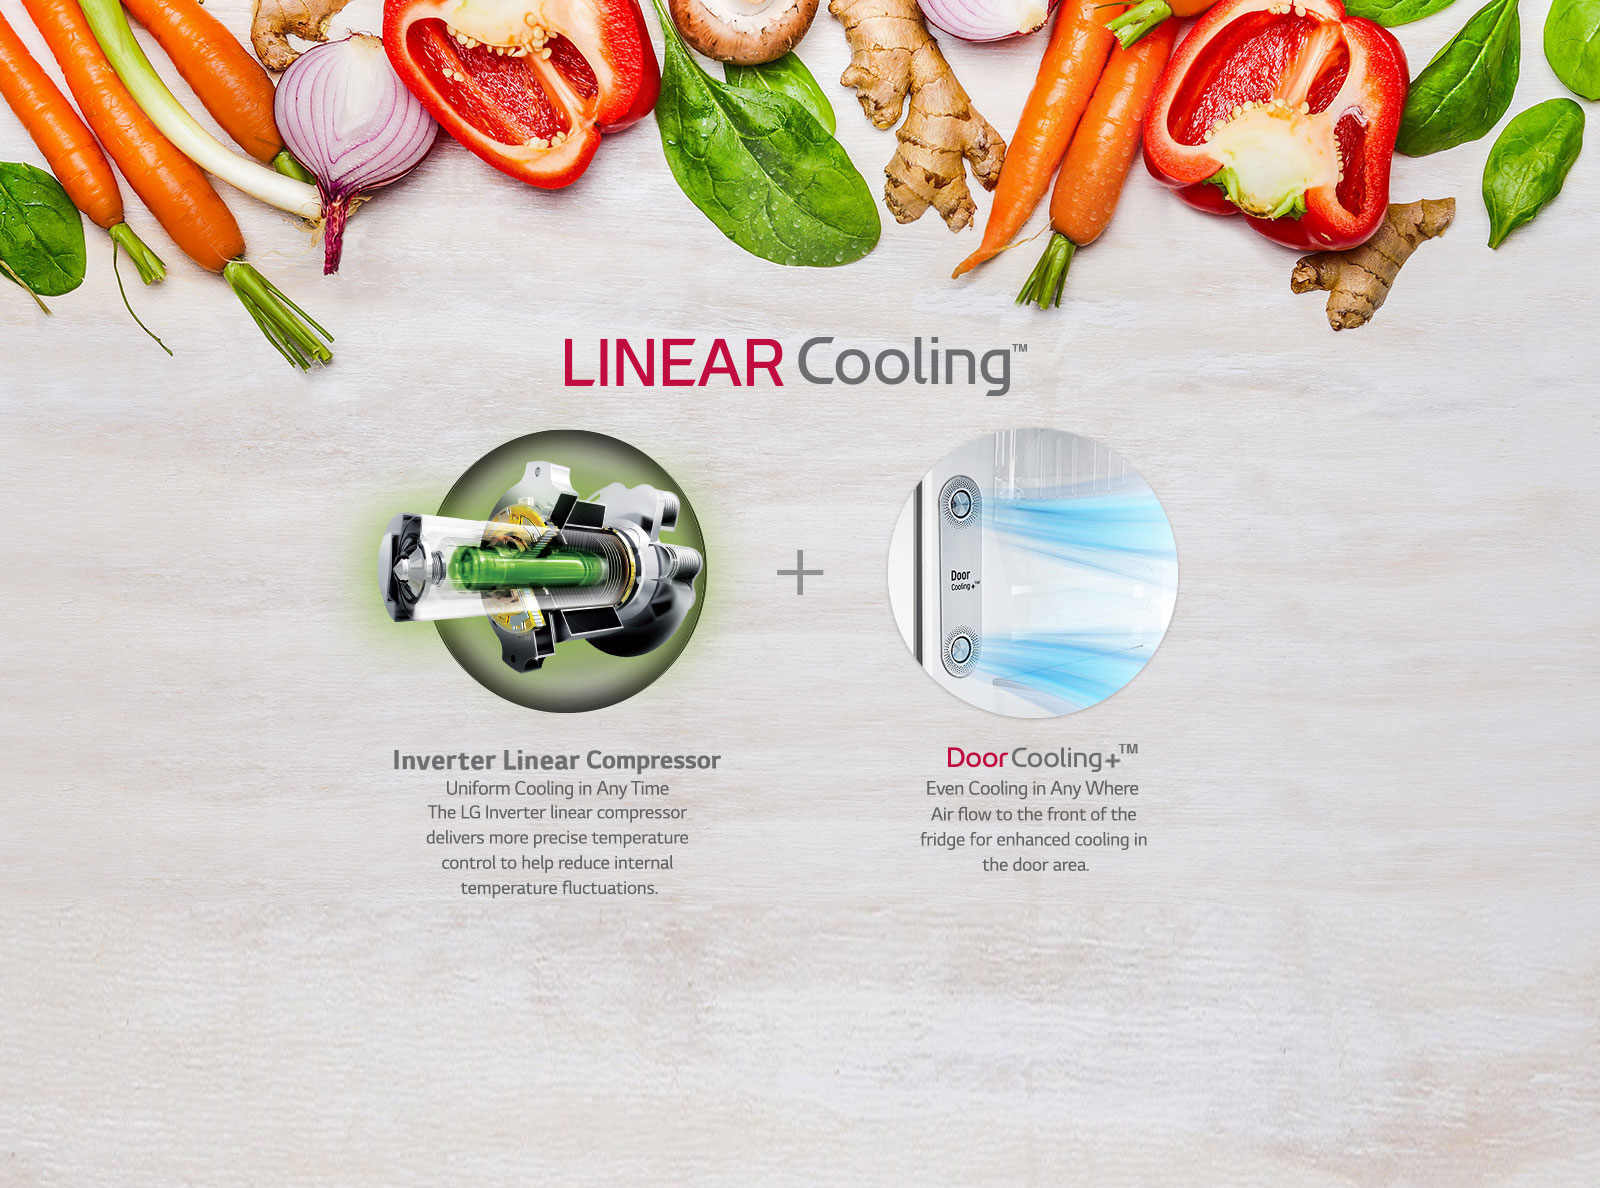 LG GL-T292RES3 260 Ltr Linear Cooling